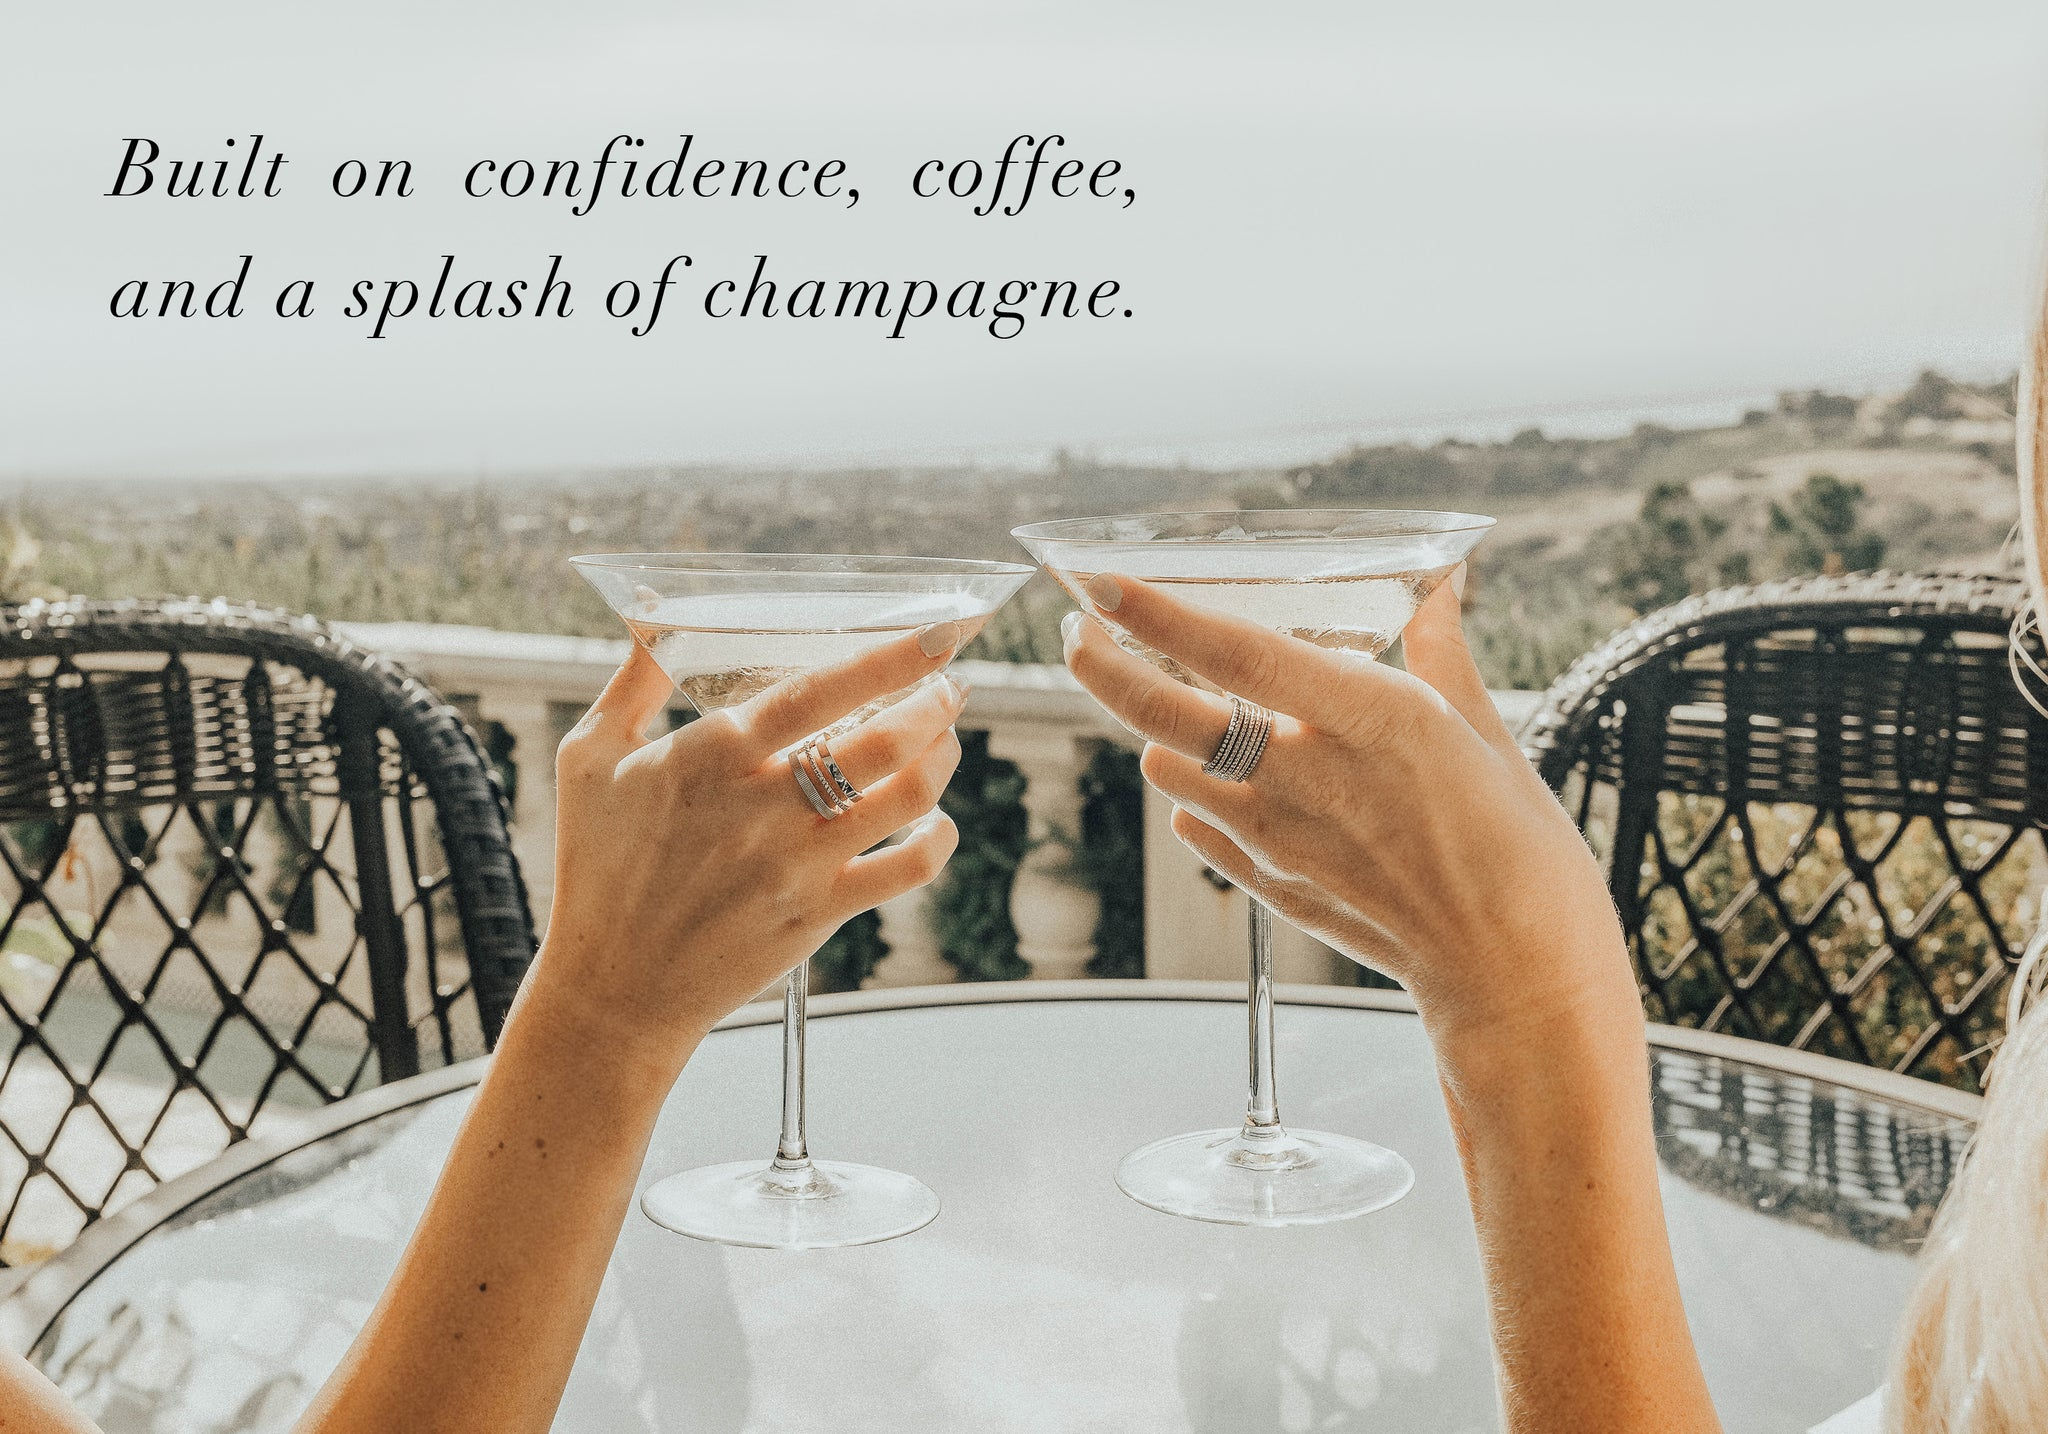 Built on confidence, coffee, and a splash of champagne.